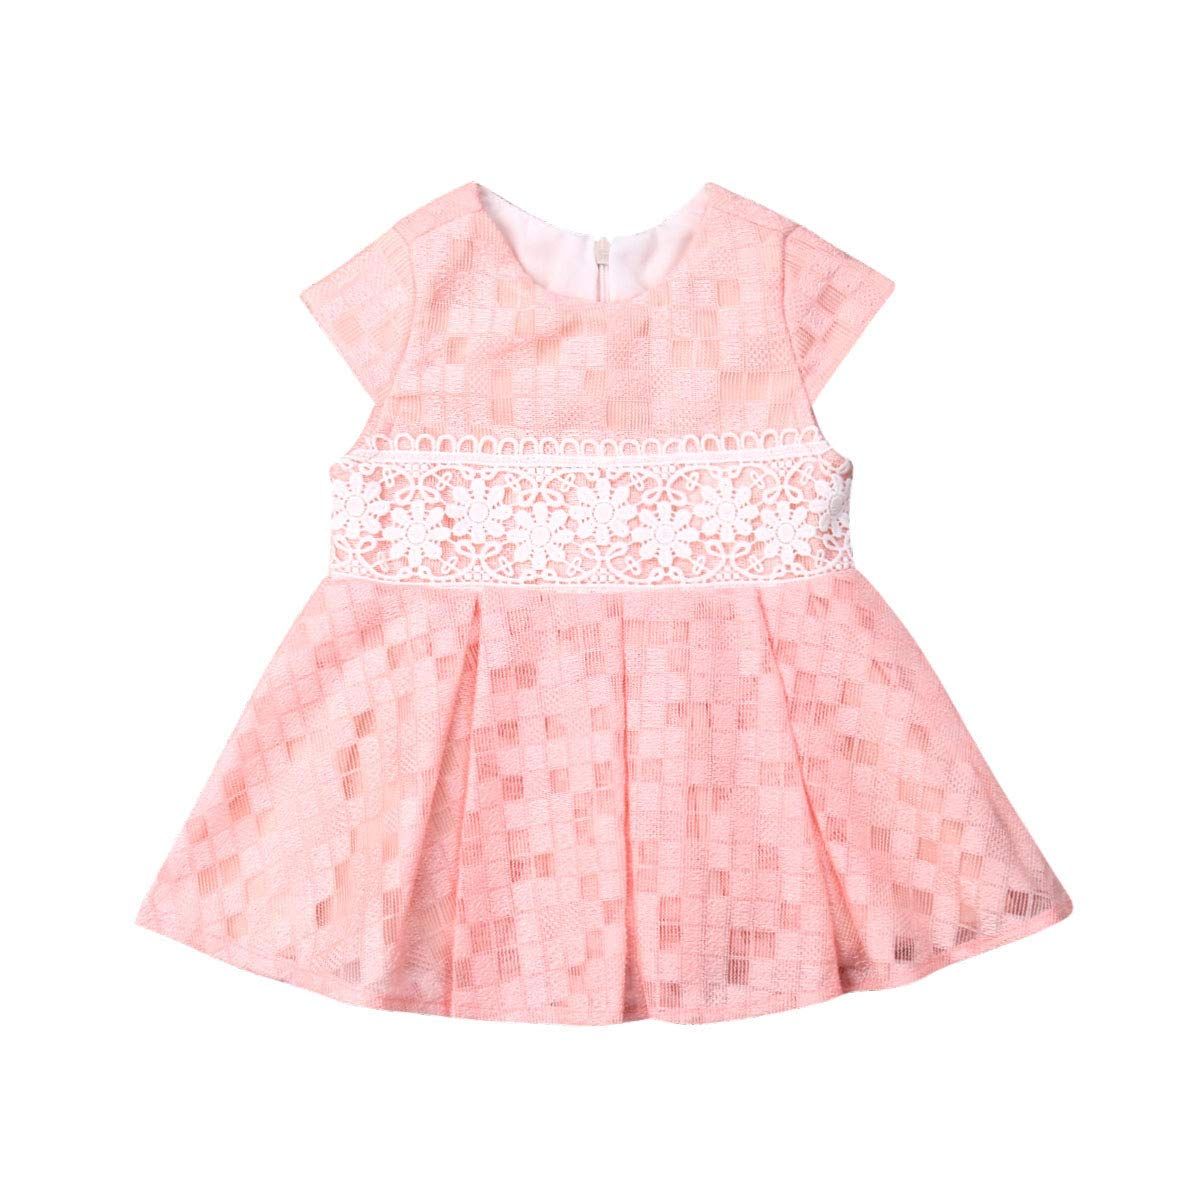 Baby Girls Princess Dresses Vintage Lace Flower Girl Birthday Party Dress